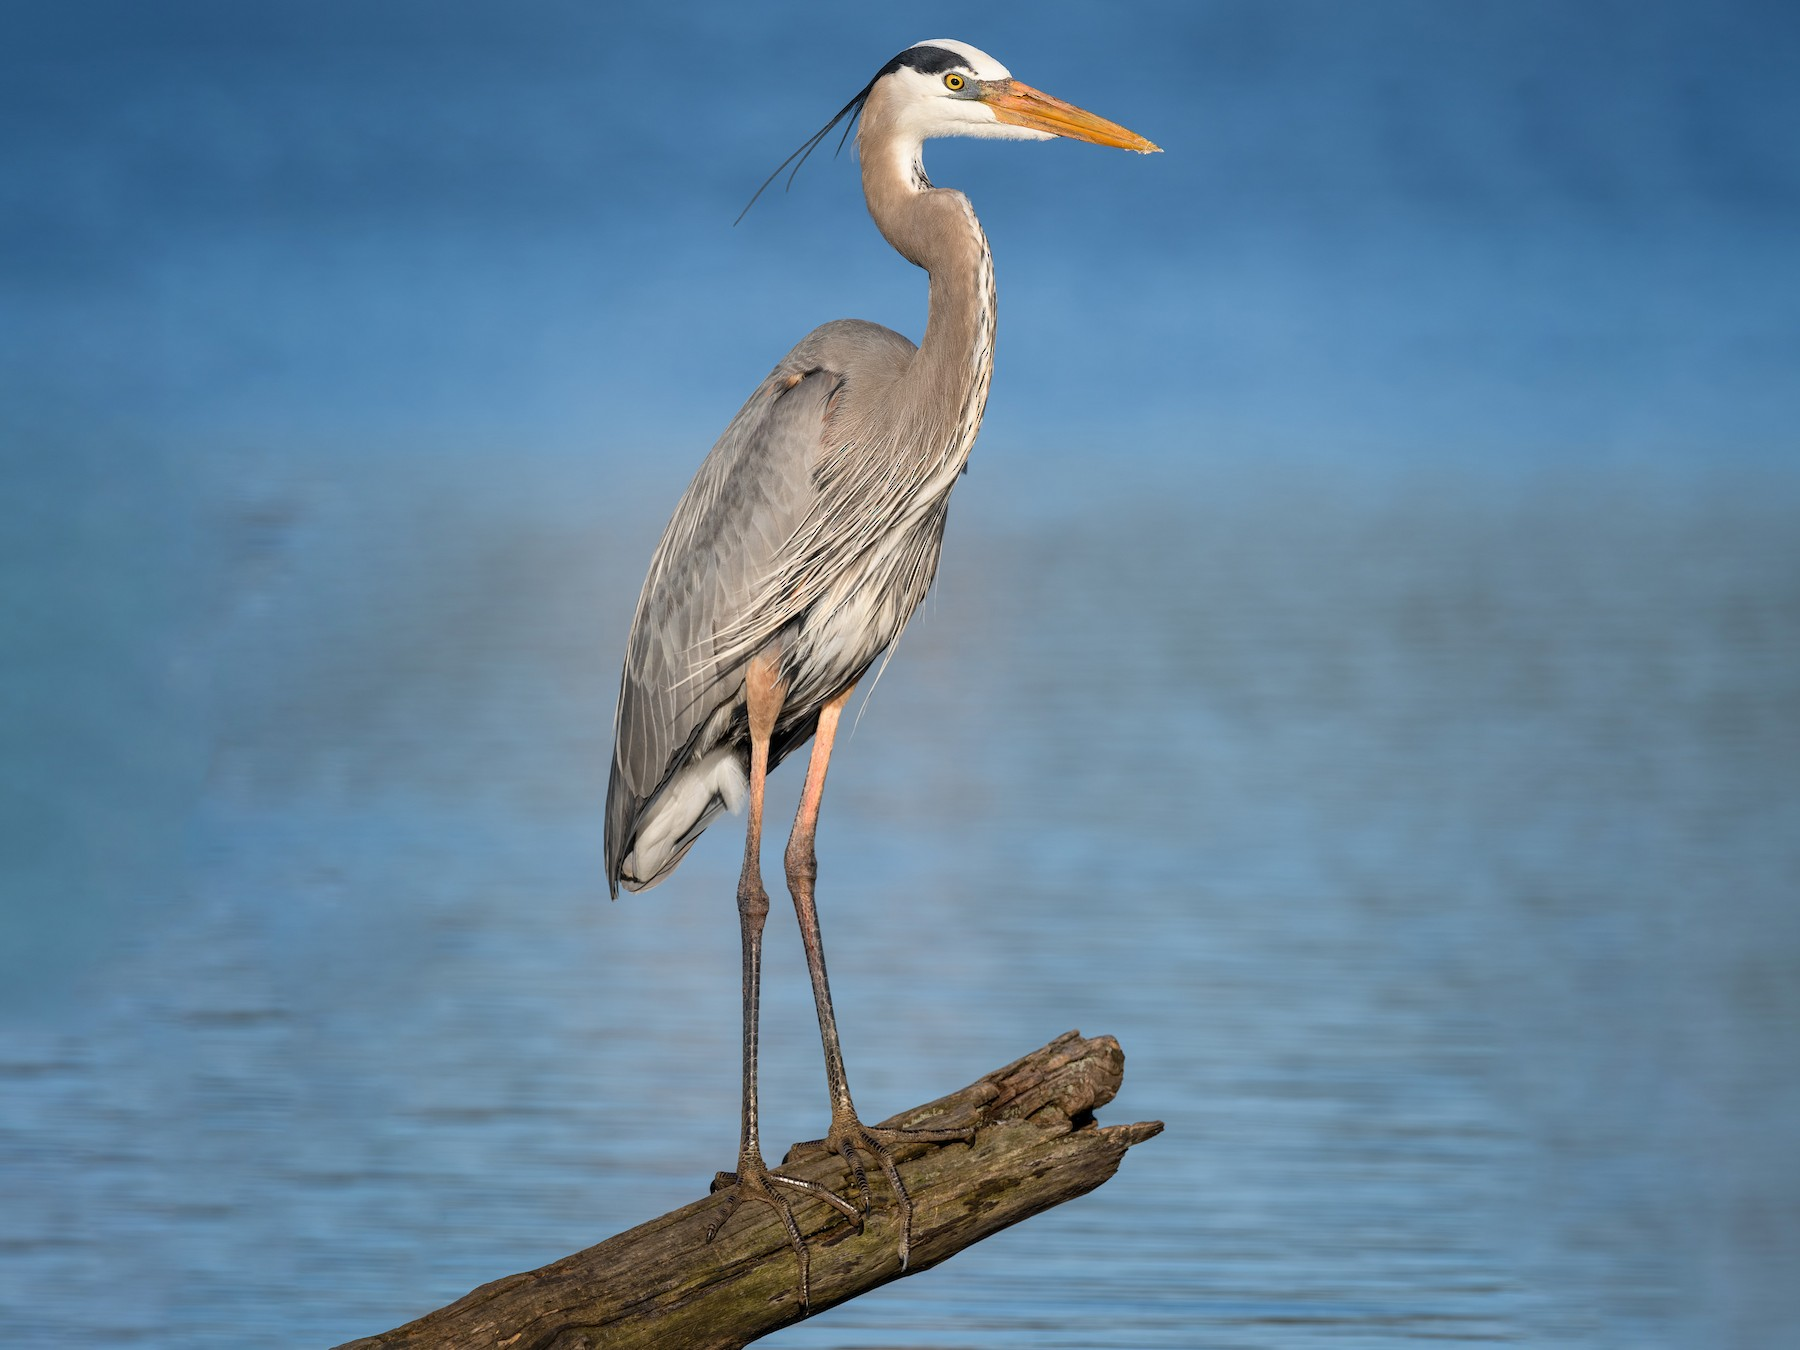 Great Blue Heron - Daniel Grossi